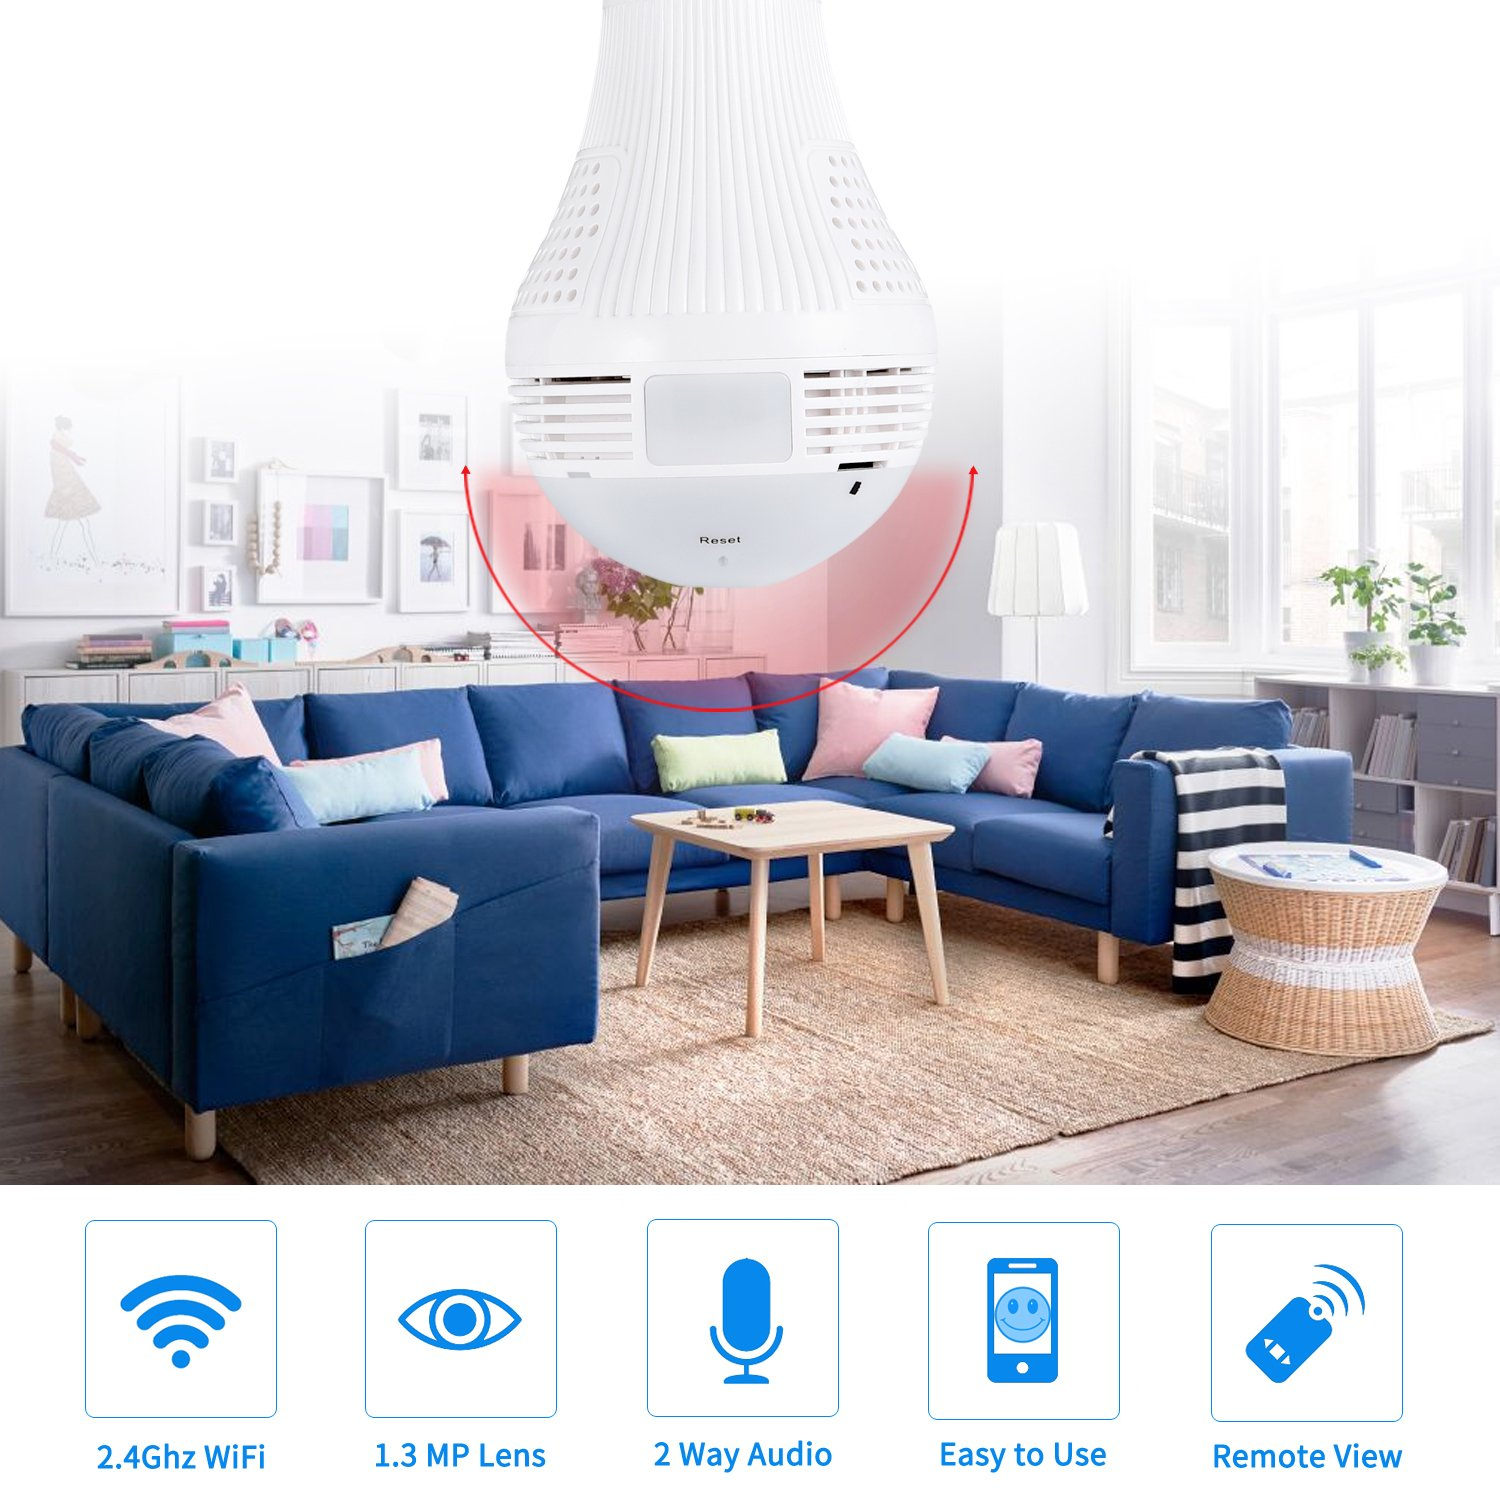 360 Degree Panoramic Camera WiFi IP Bulb Camera 960P Fisheye Lens Home Security Camera System Wireless Camera for Kids & Pets Monitor with iOS/Android App Easy Installation for Large Area Monitoring by Mykit (Image #3)